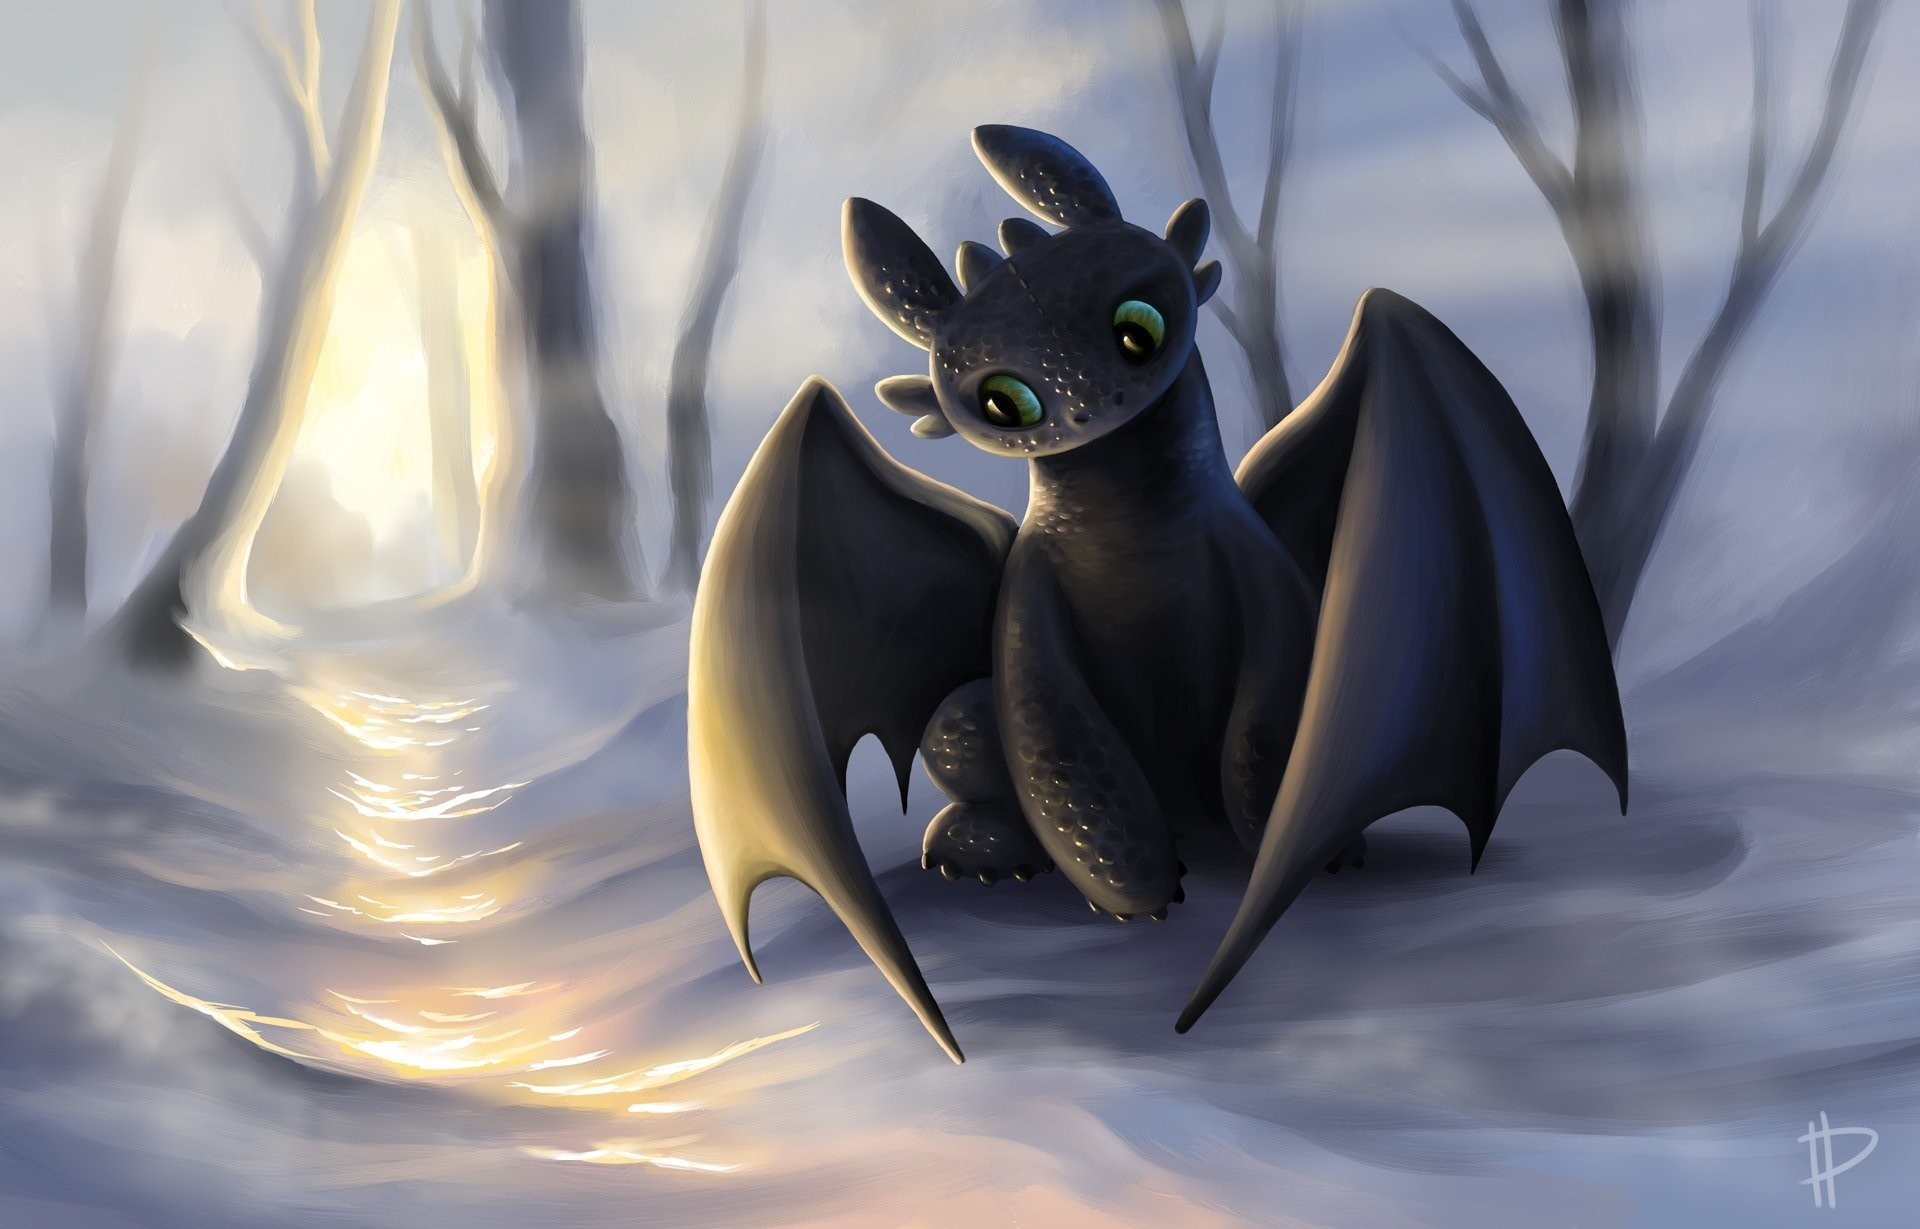 1920x1200 Toothless the Night Fury wallpaper - Click picture for high resolution HD wallpaper